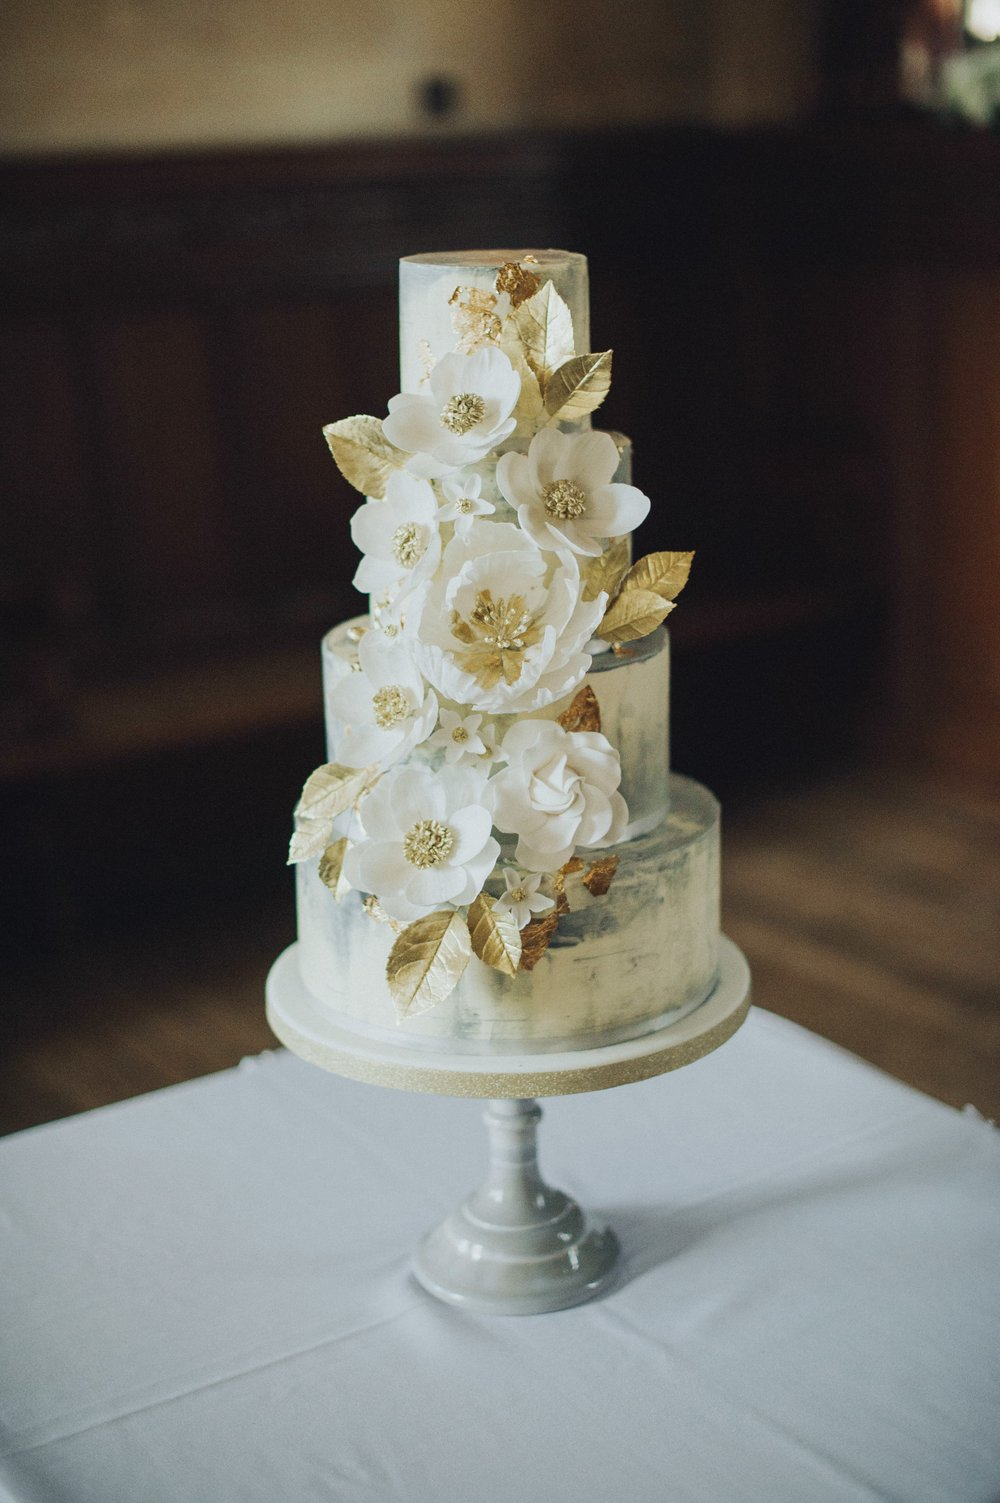 Fanhams Hall wedding cake concrete buttercream, sugar flowers, gold leaf and guilded leaves by Meadowsweet Cakes